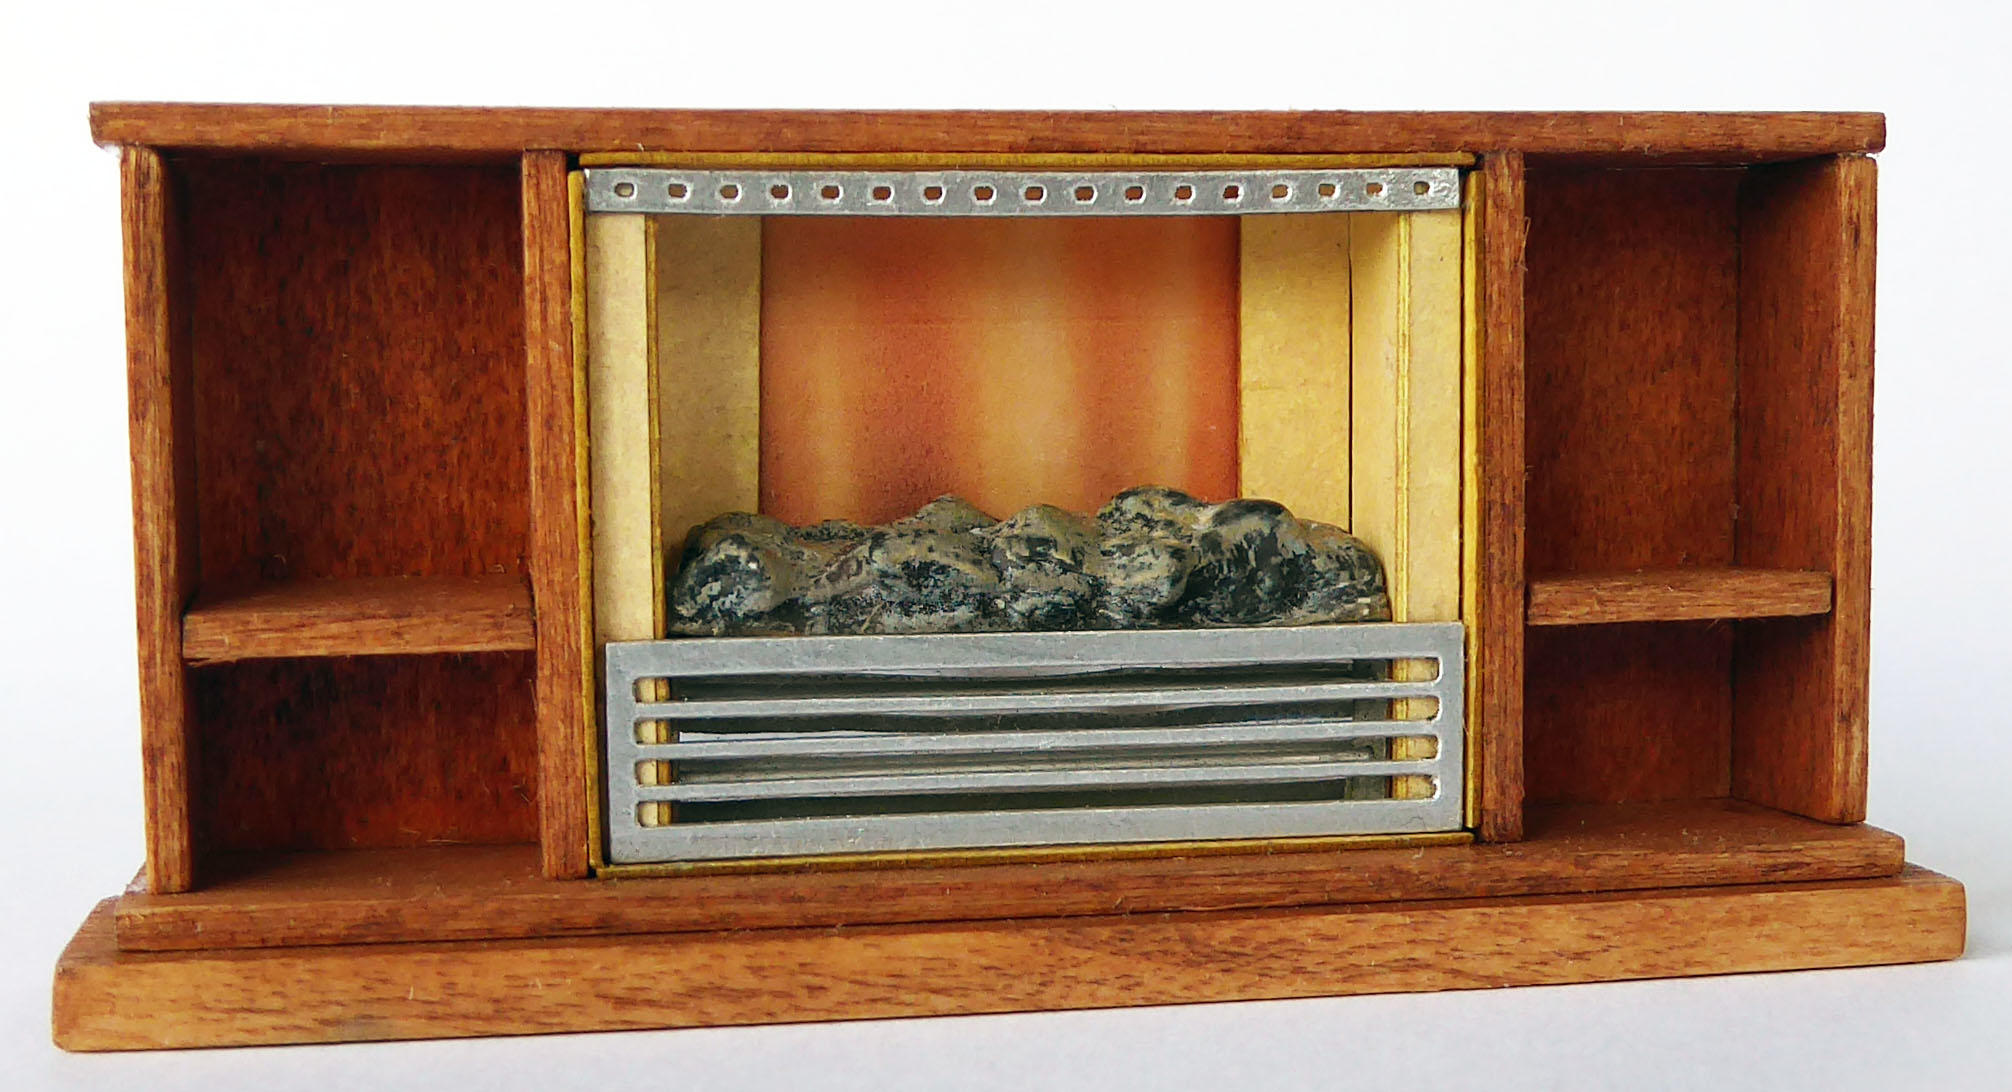 1/48th scale 70s Retro Miniature Coal Effect Fire Kit